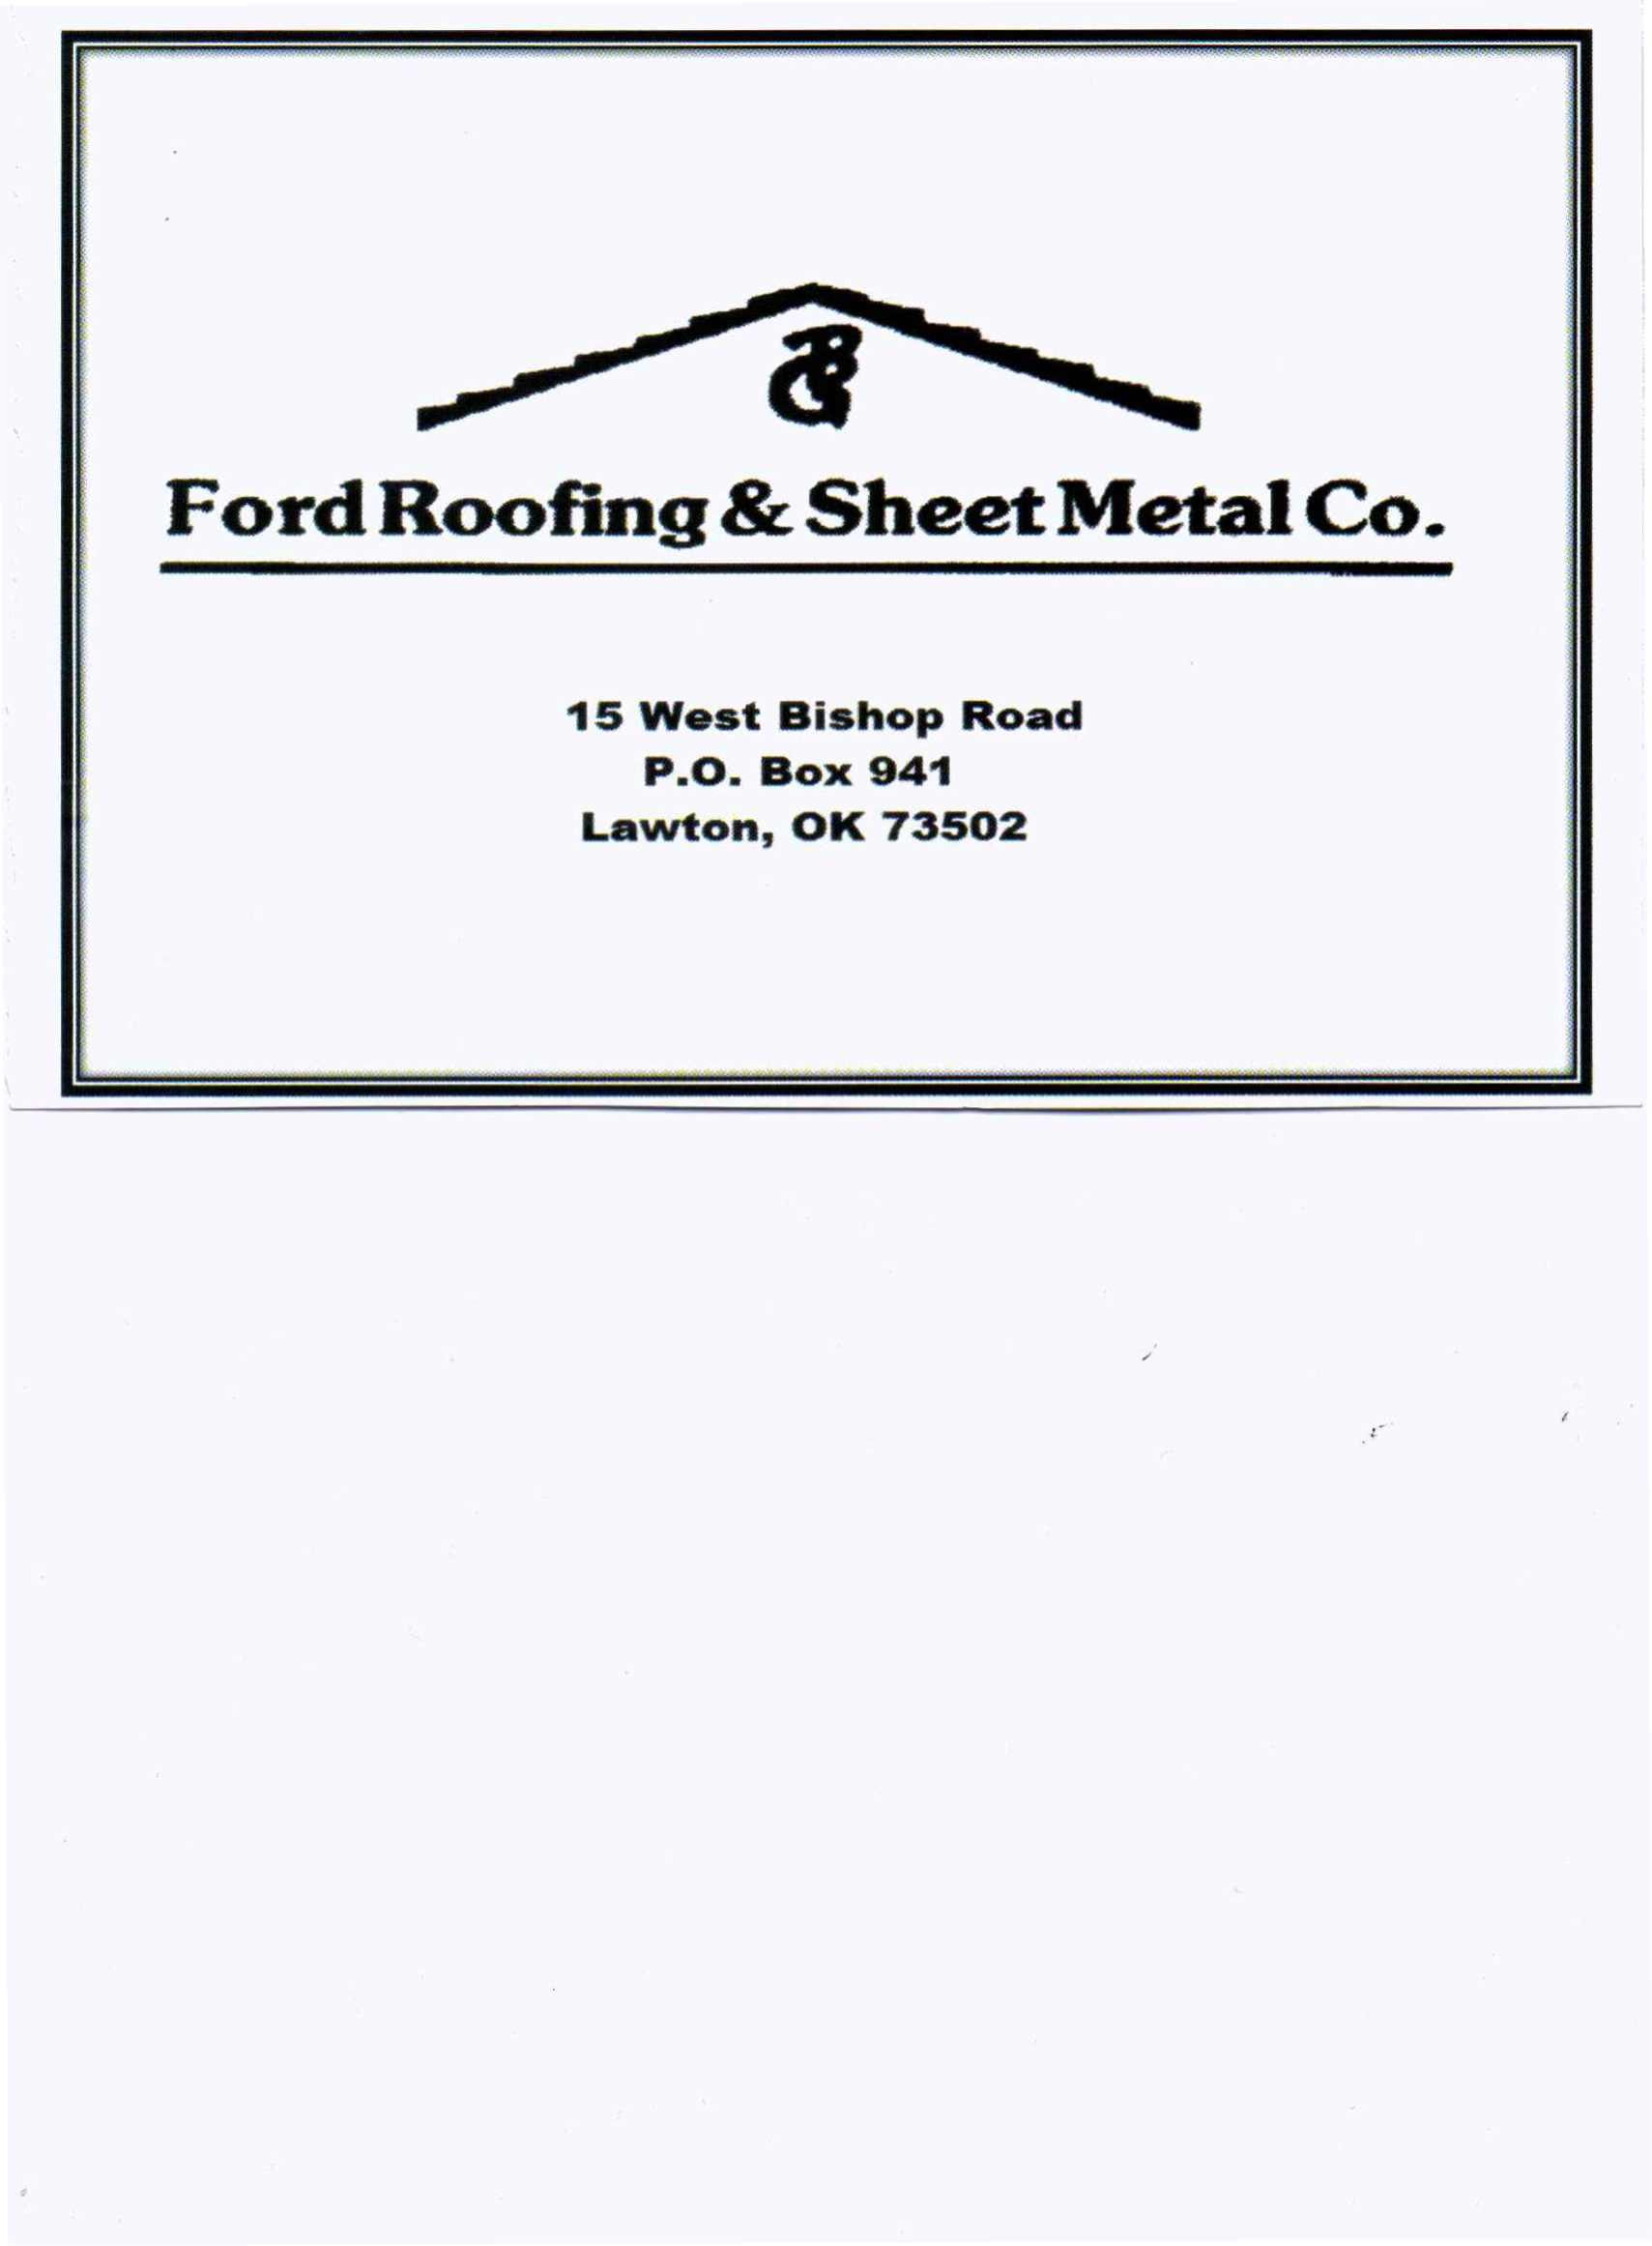 68. Ford Roofing